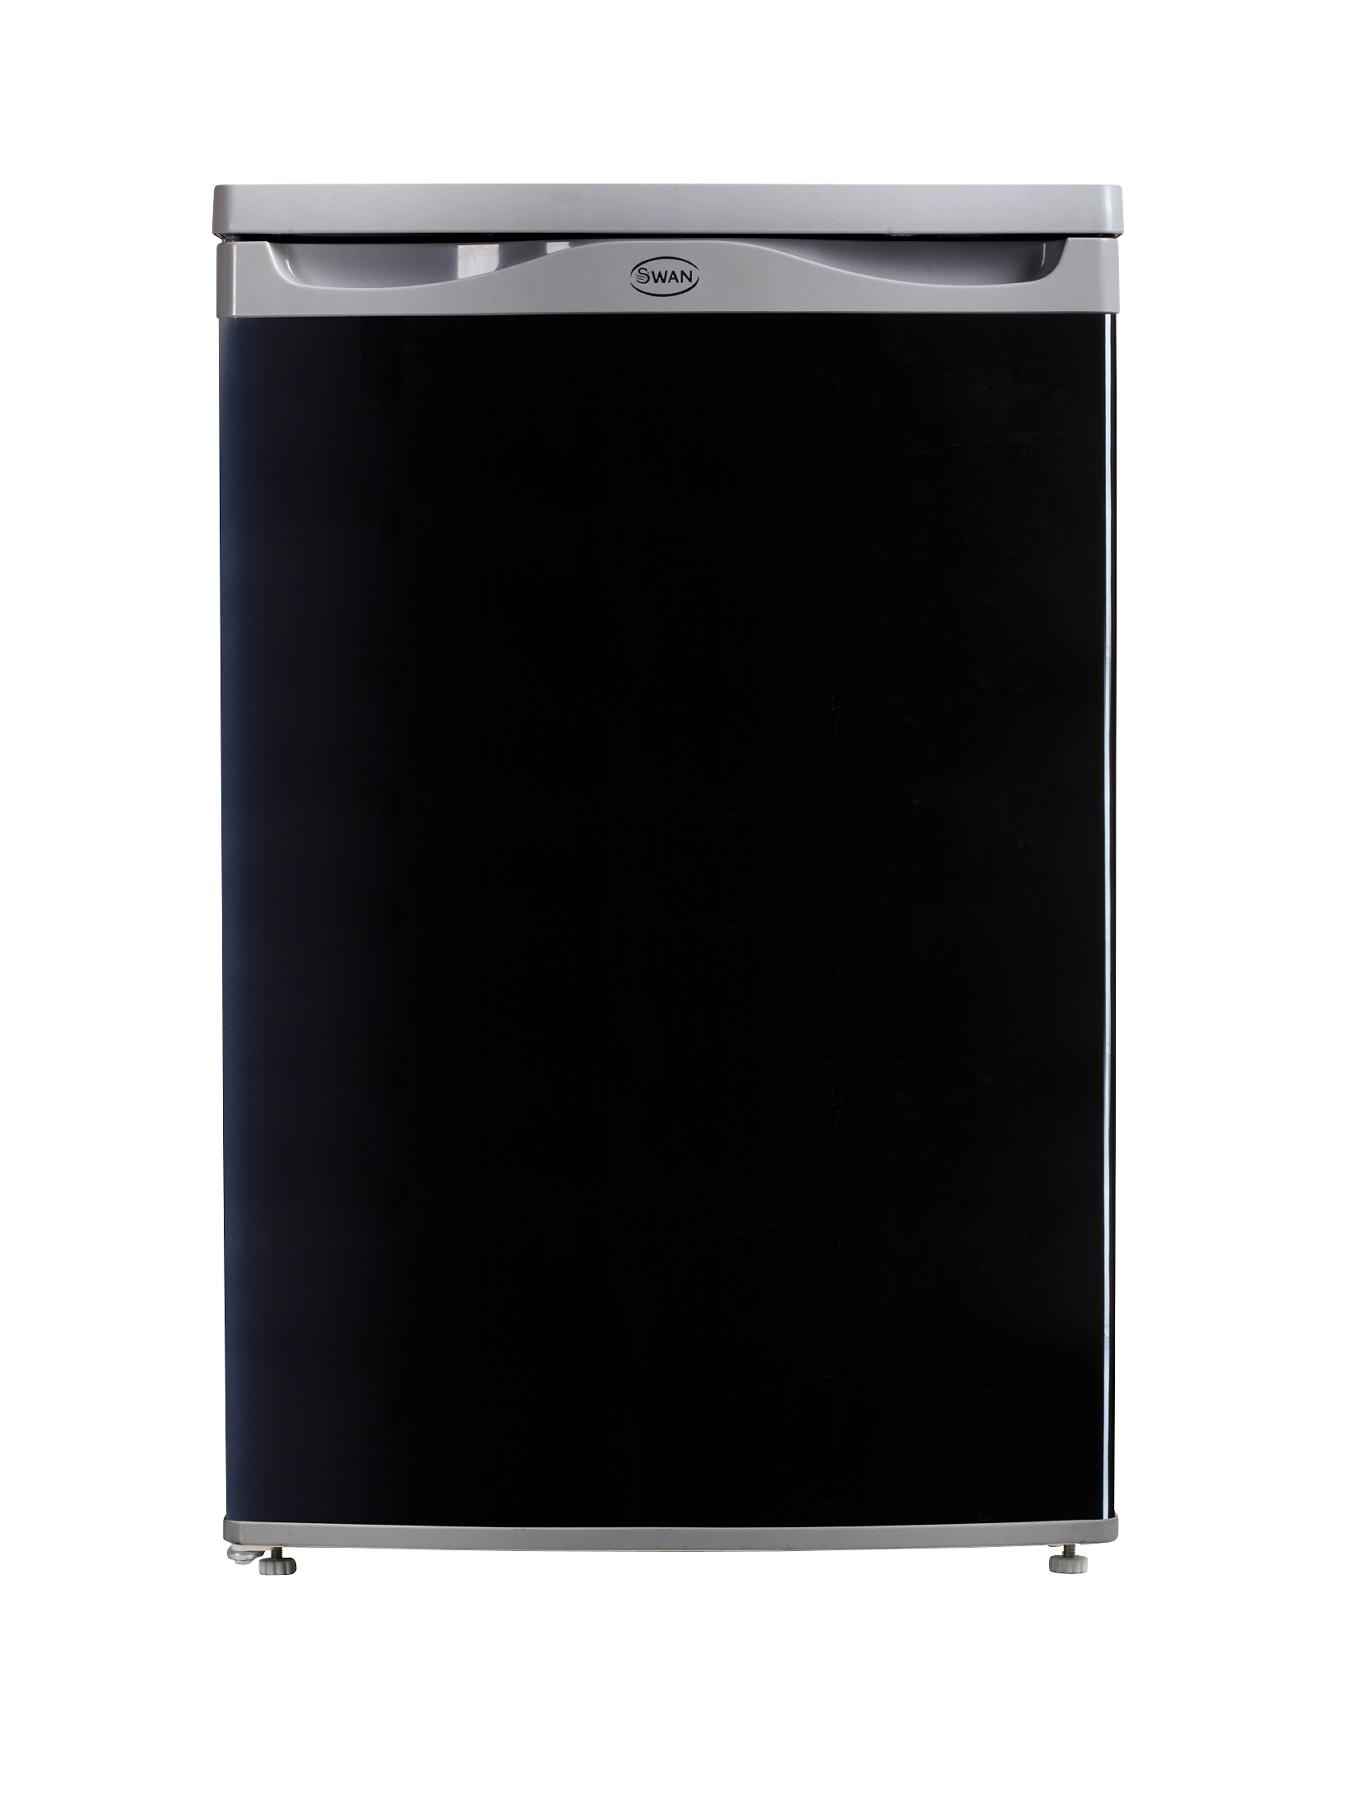 SR5151B 55cm Under-counter Larder Freezer - Black